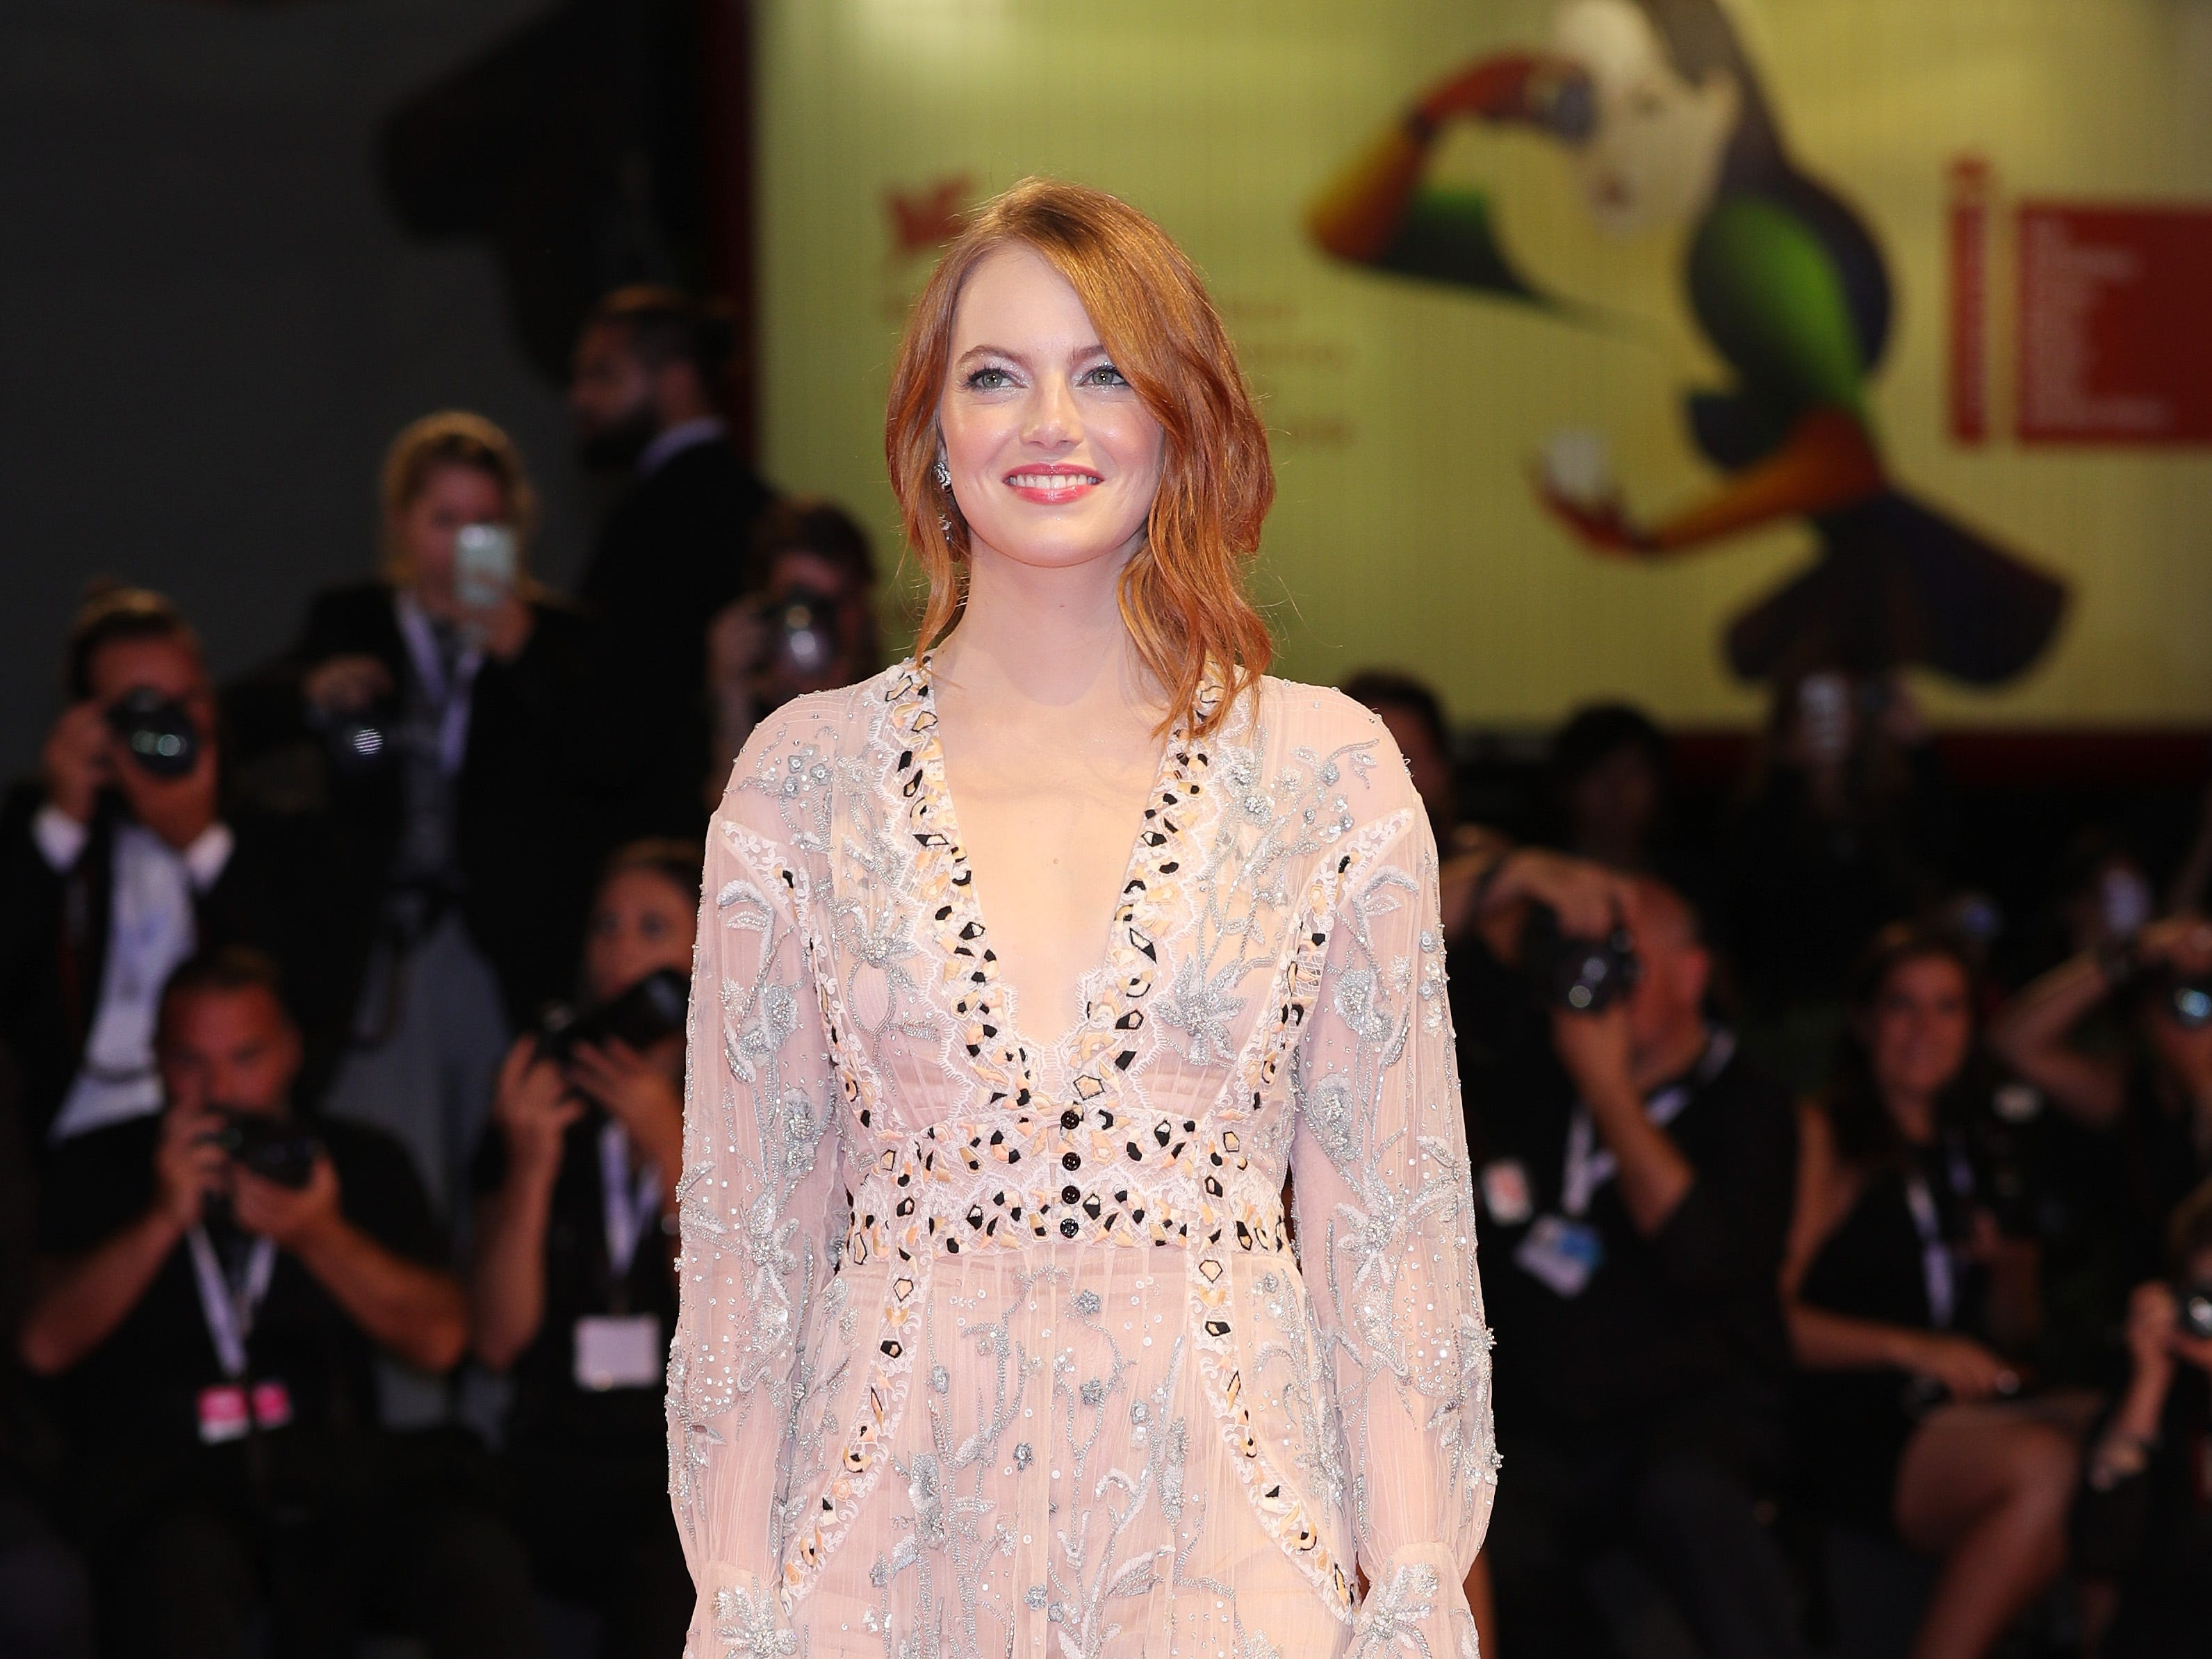 Emma Stone walks the red carpet ahead of the 'The Favourite' screening during the 75th Venice Film Festival at Sala Grande on August 30, 2018 in Venice, Italy.